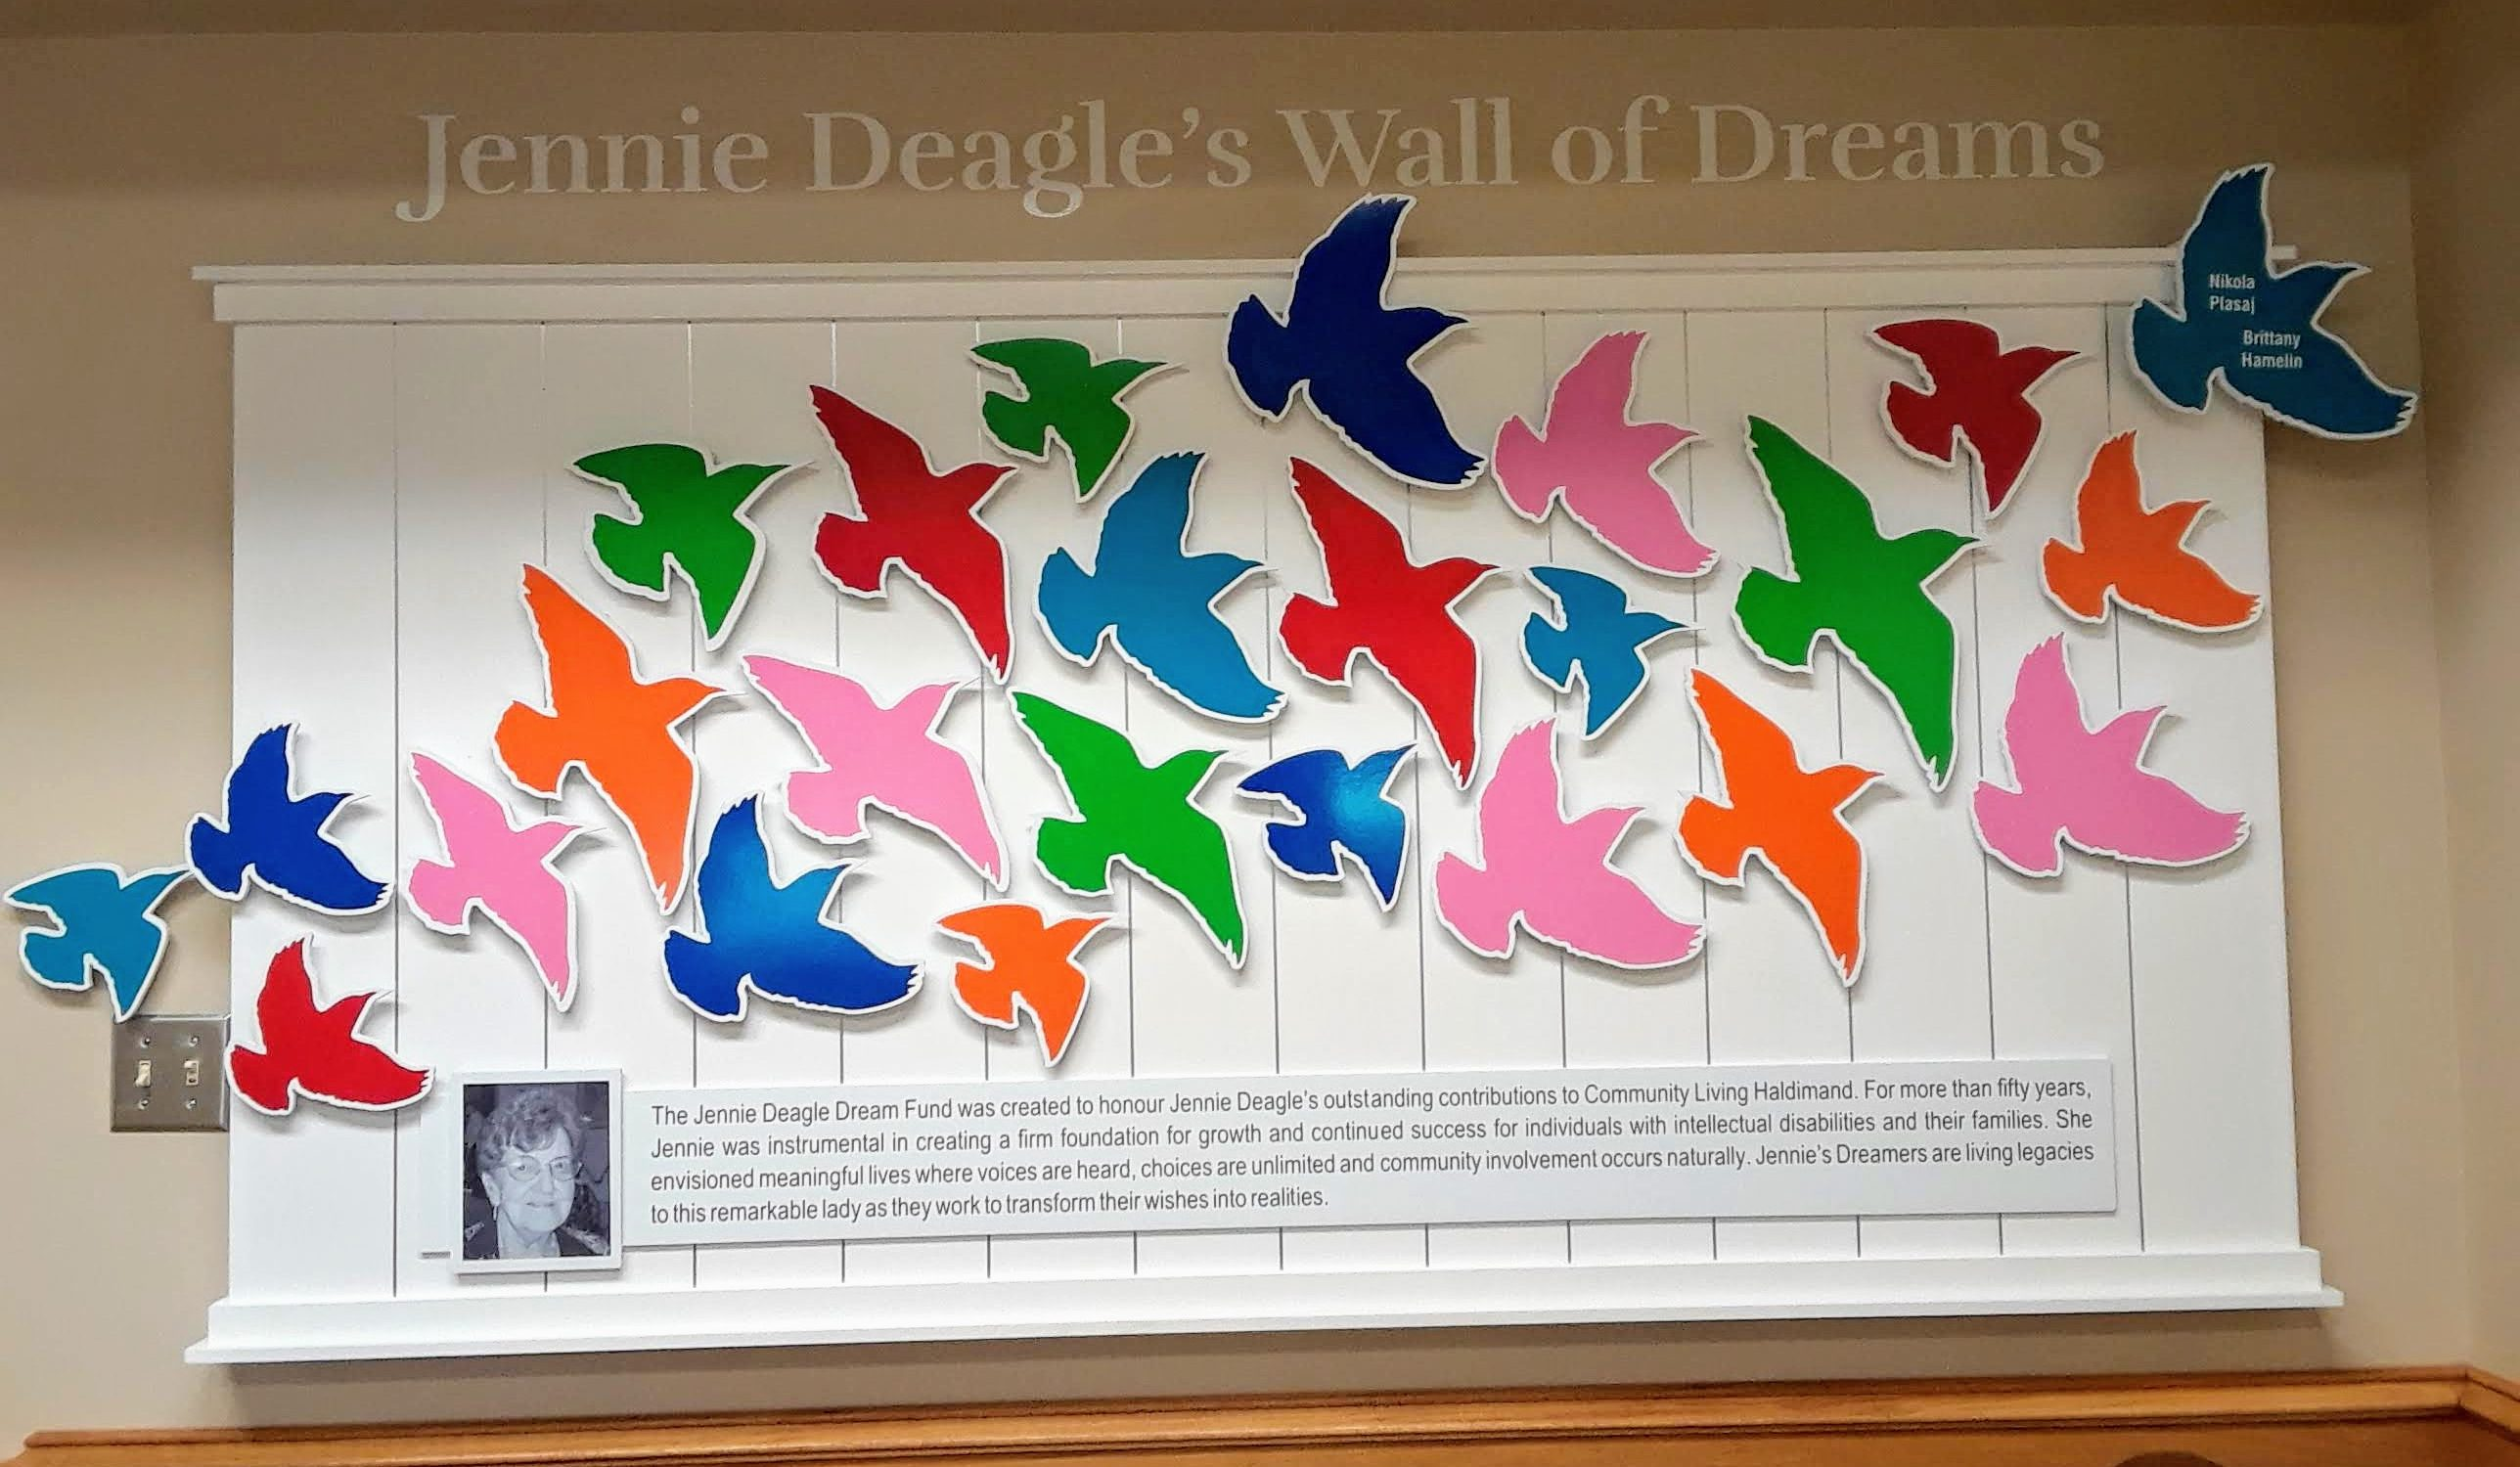 Art piece on wall with multiple, colourful birds flying upwards